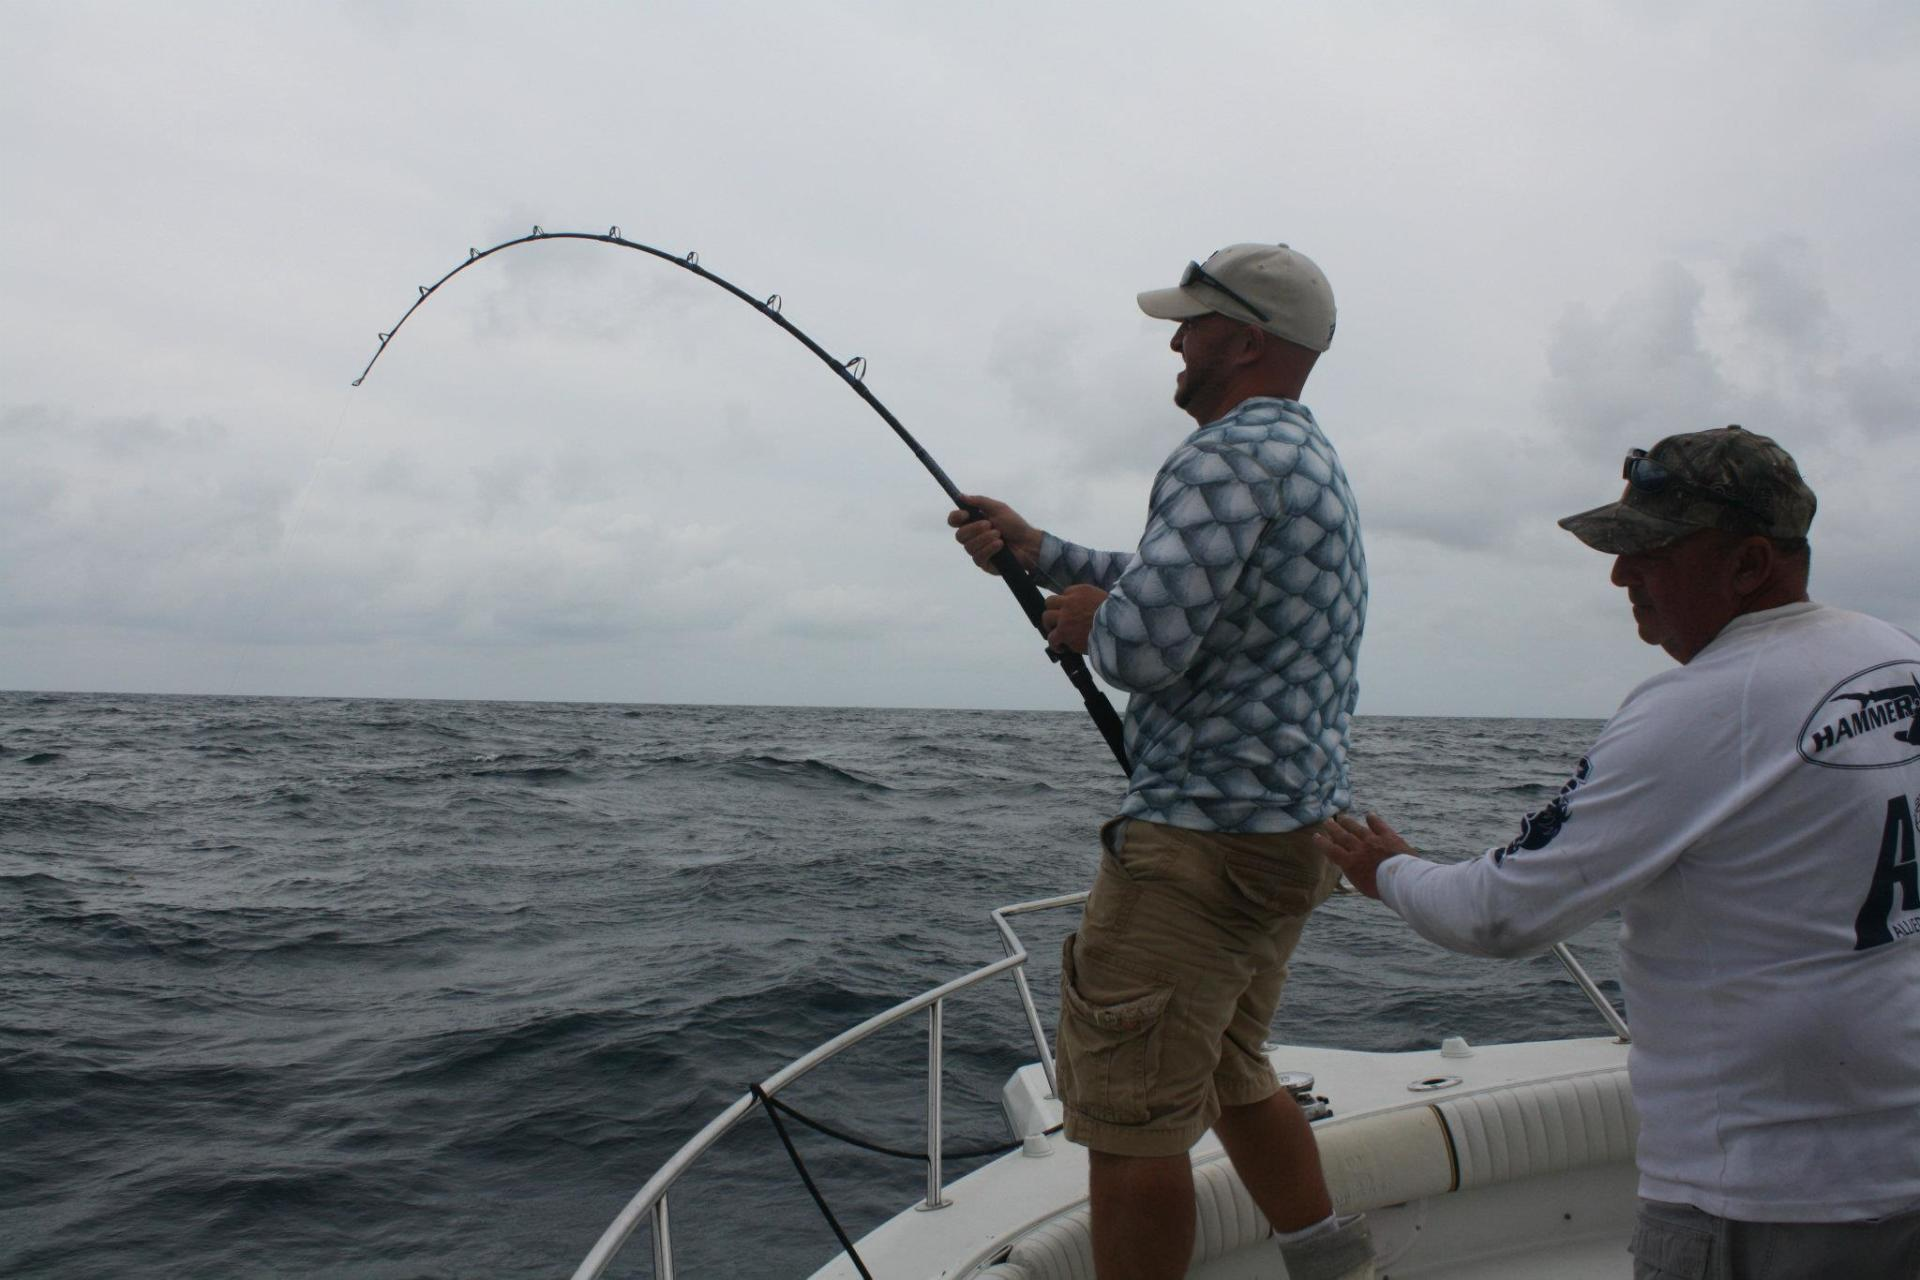 offshore fishing charter west palm beach fl